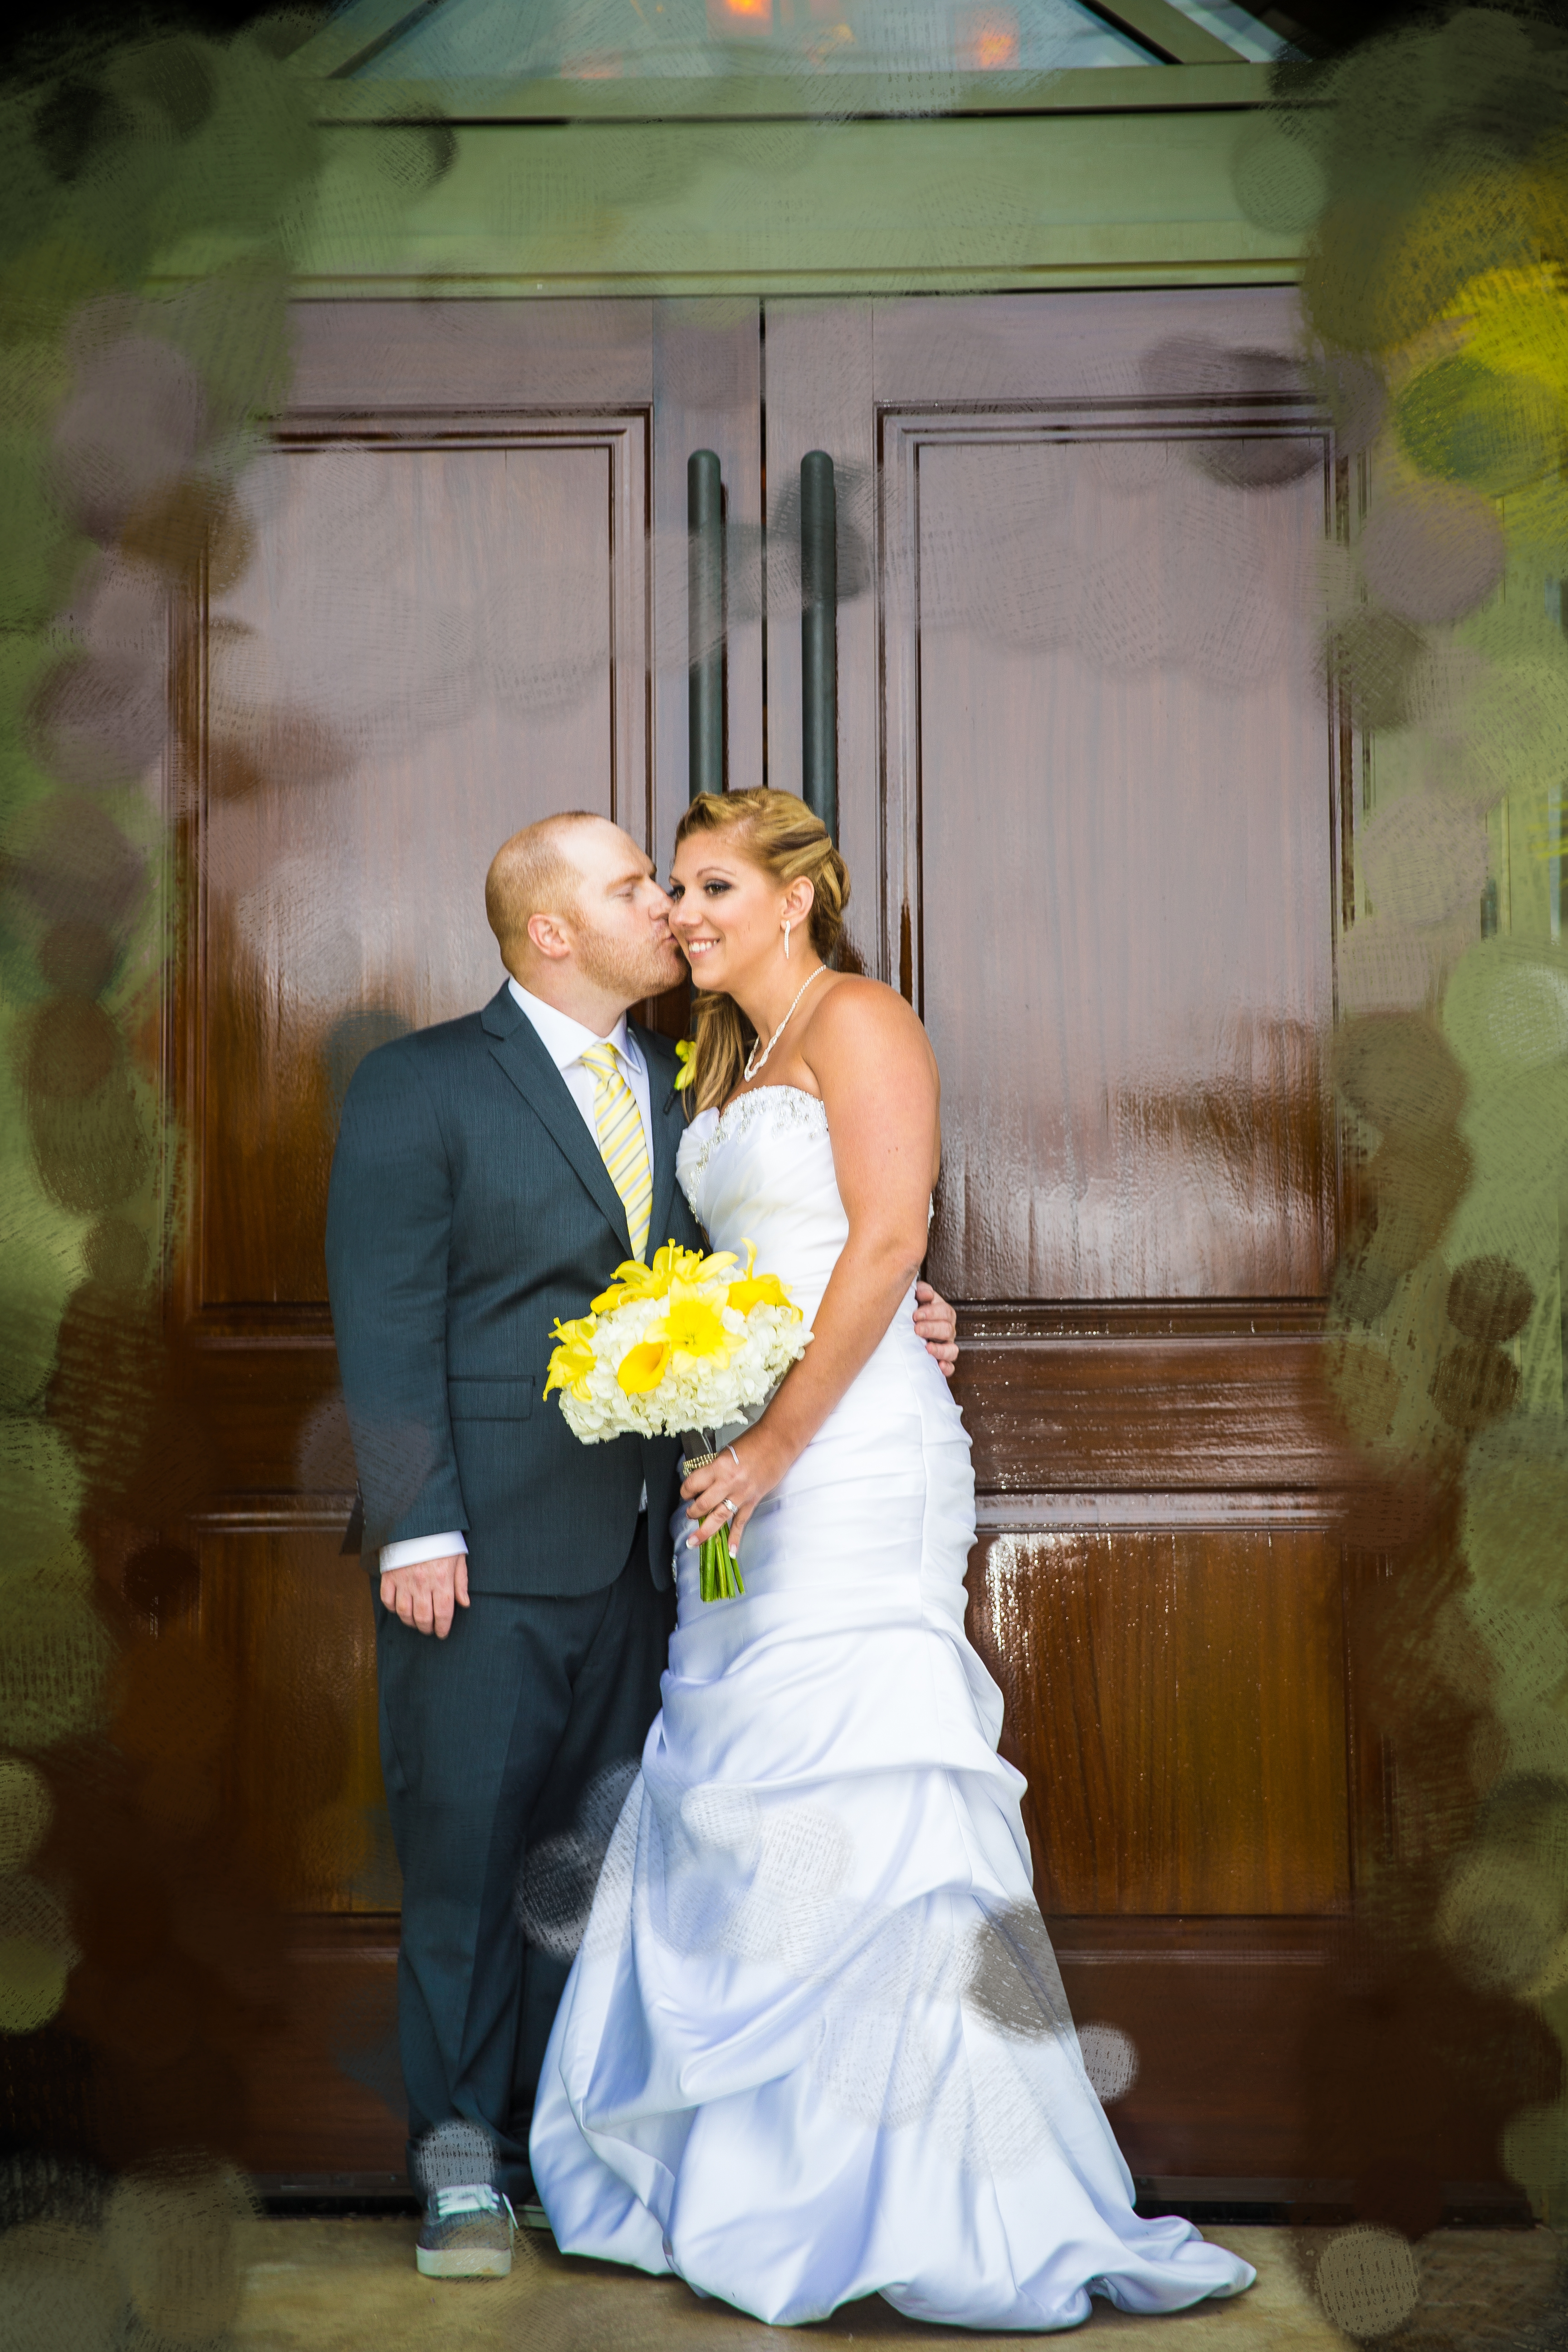 Lamplighter Inn - DMP wedding photographer London